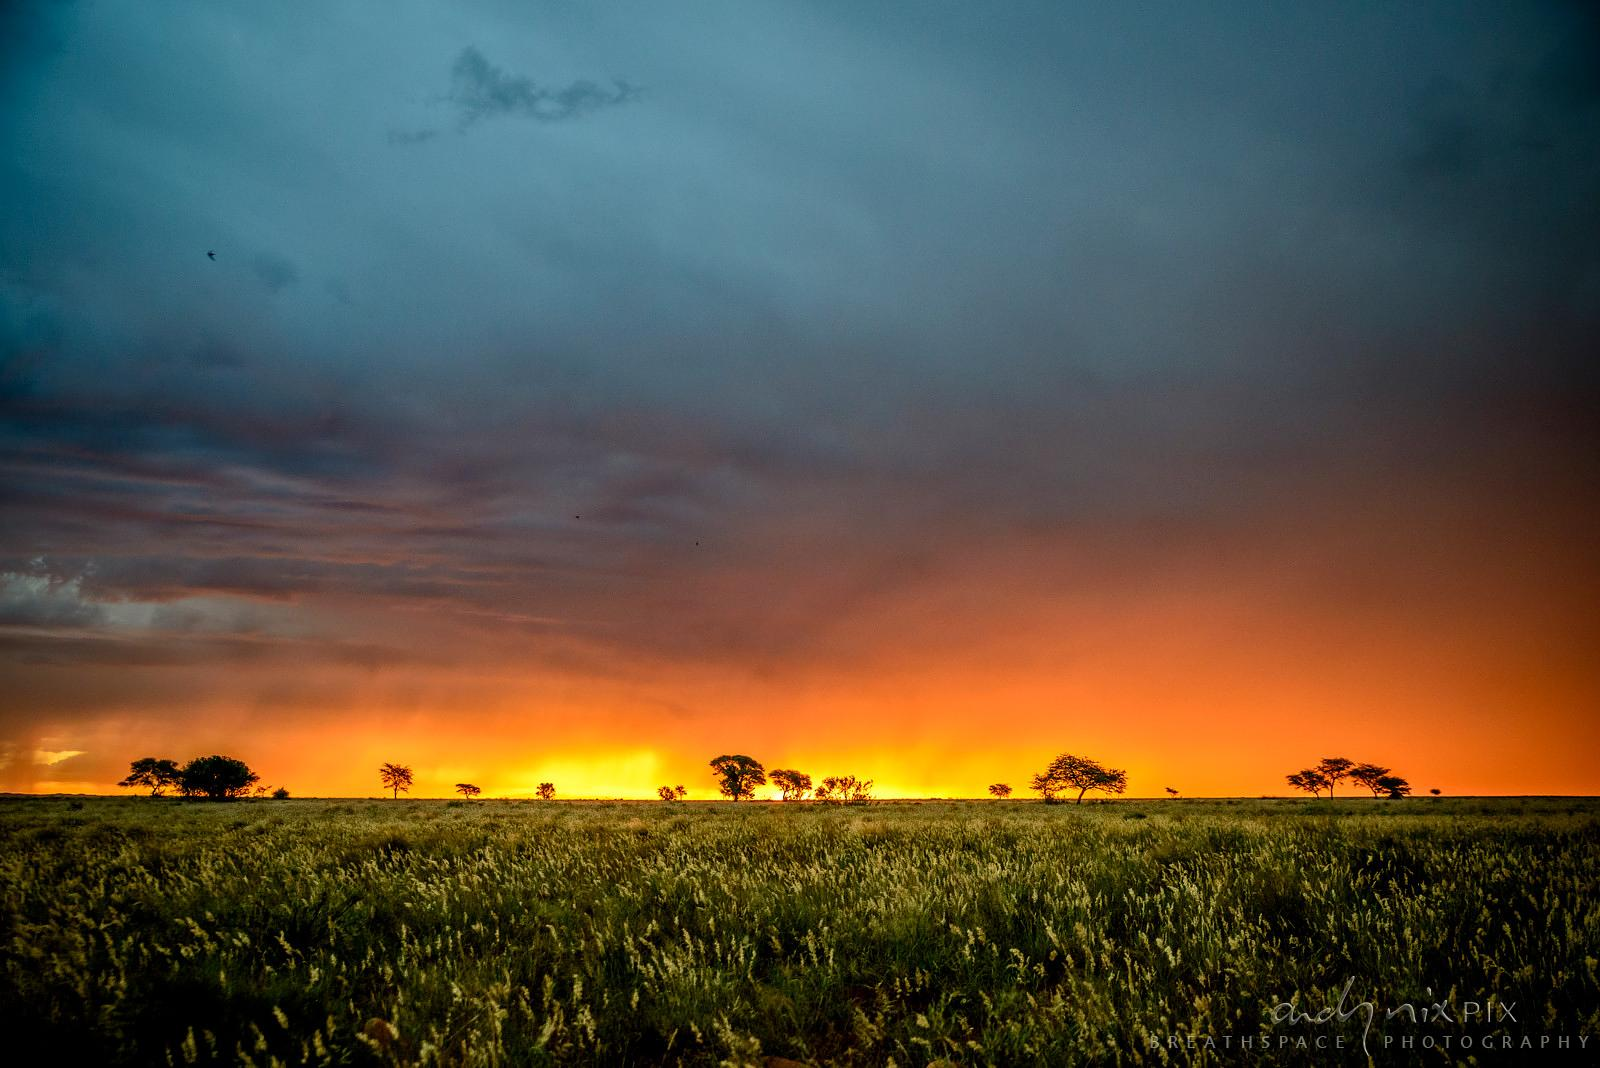 Sunset thunderstorm over open veld landscape